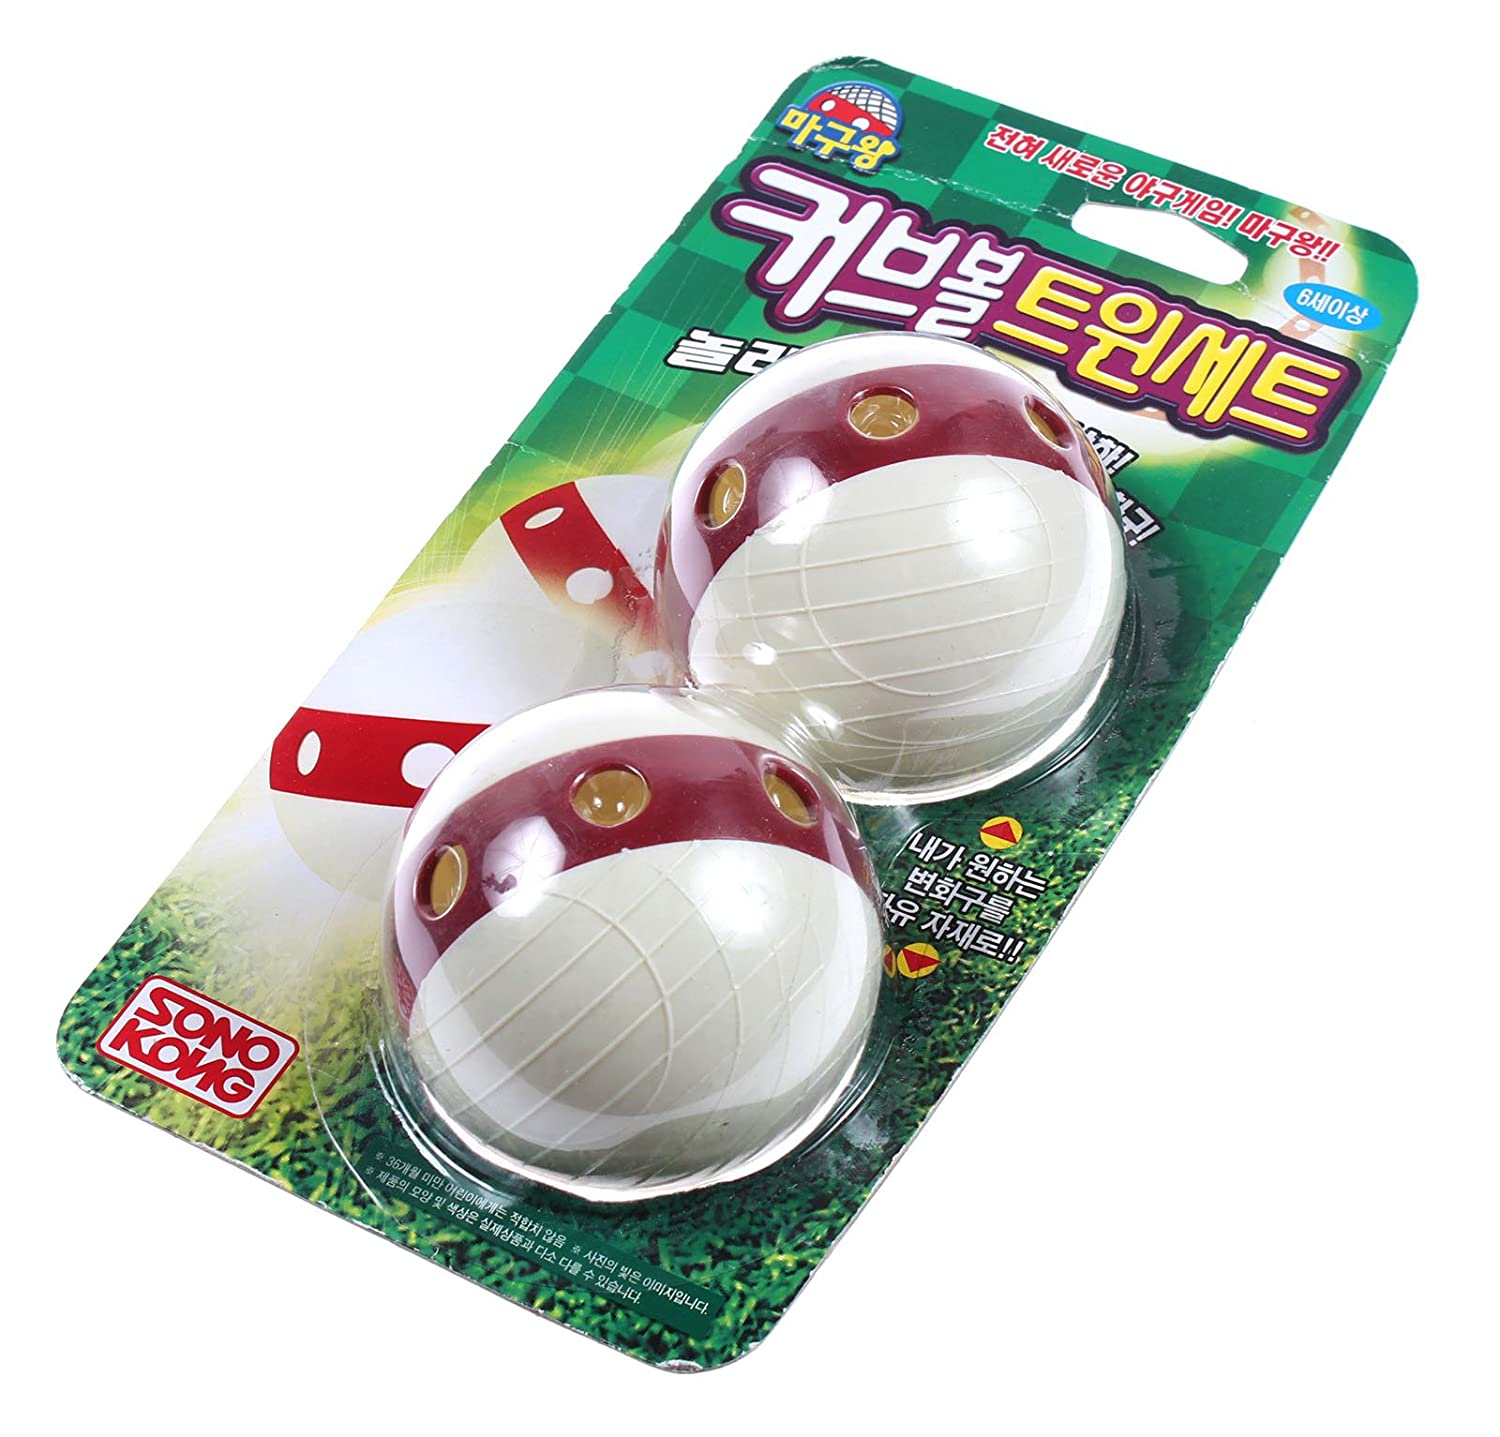 2 in 1 Magic Ball Baseballs Two of Wiffle Balls in a Pack Magic Pitch Ball B00IH9S5LC